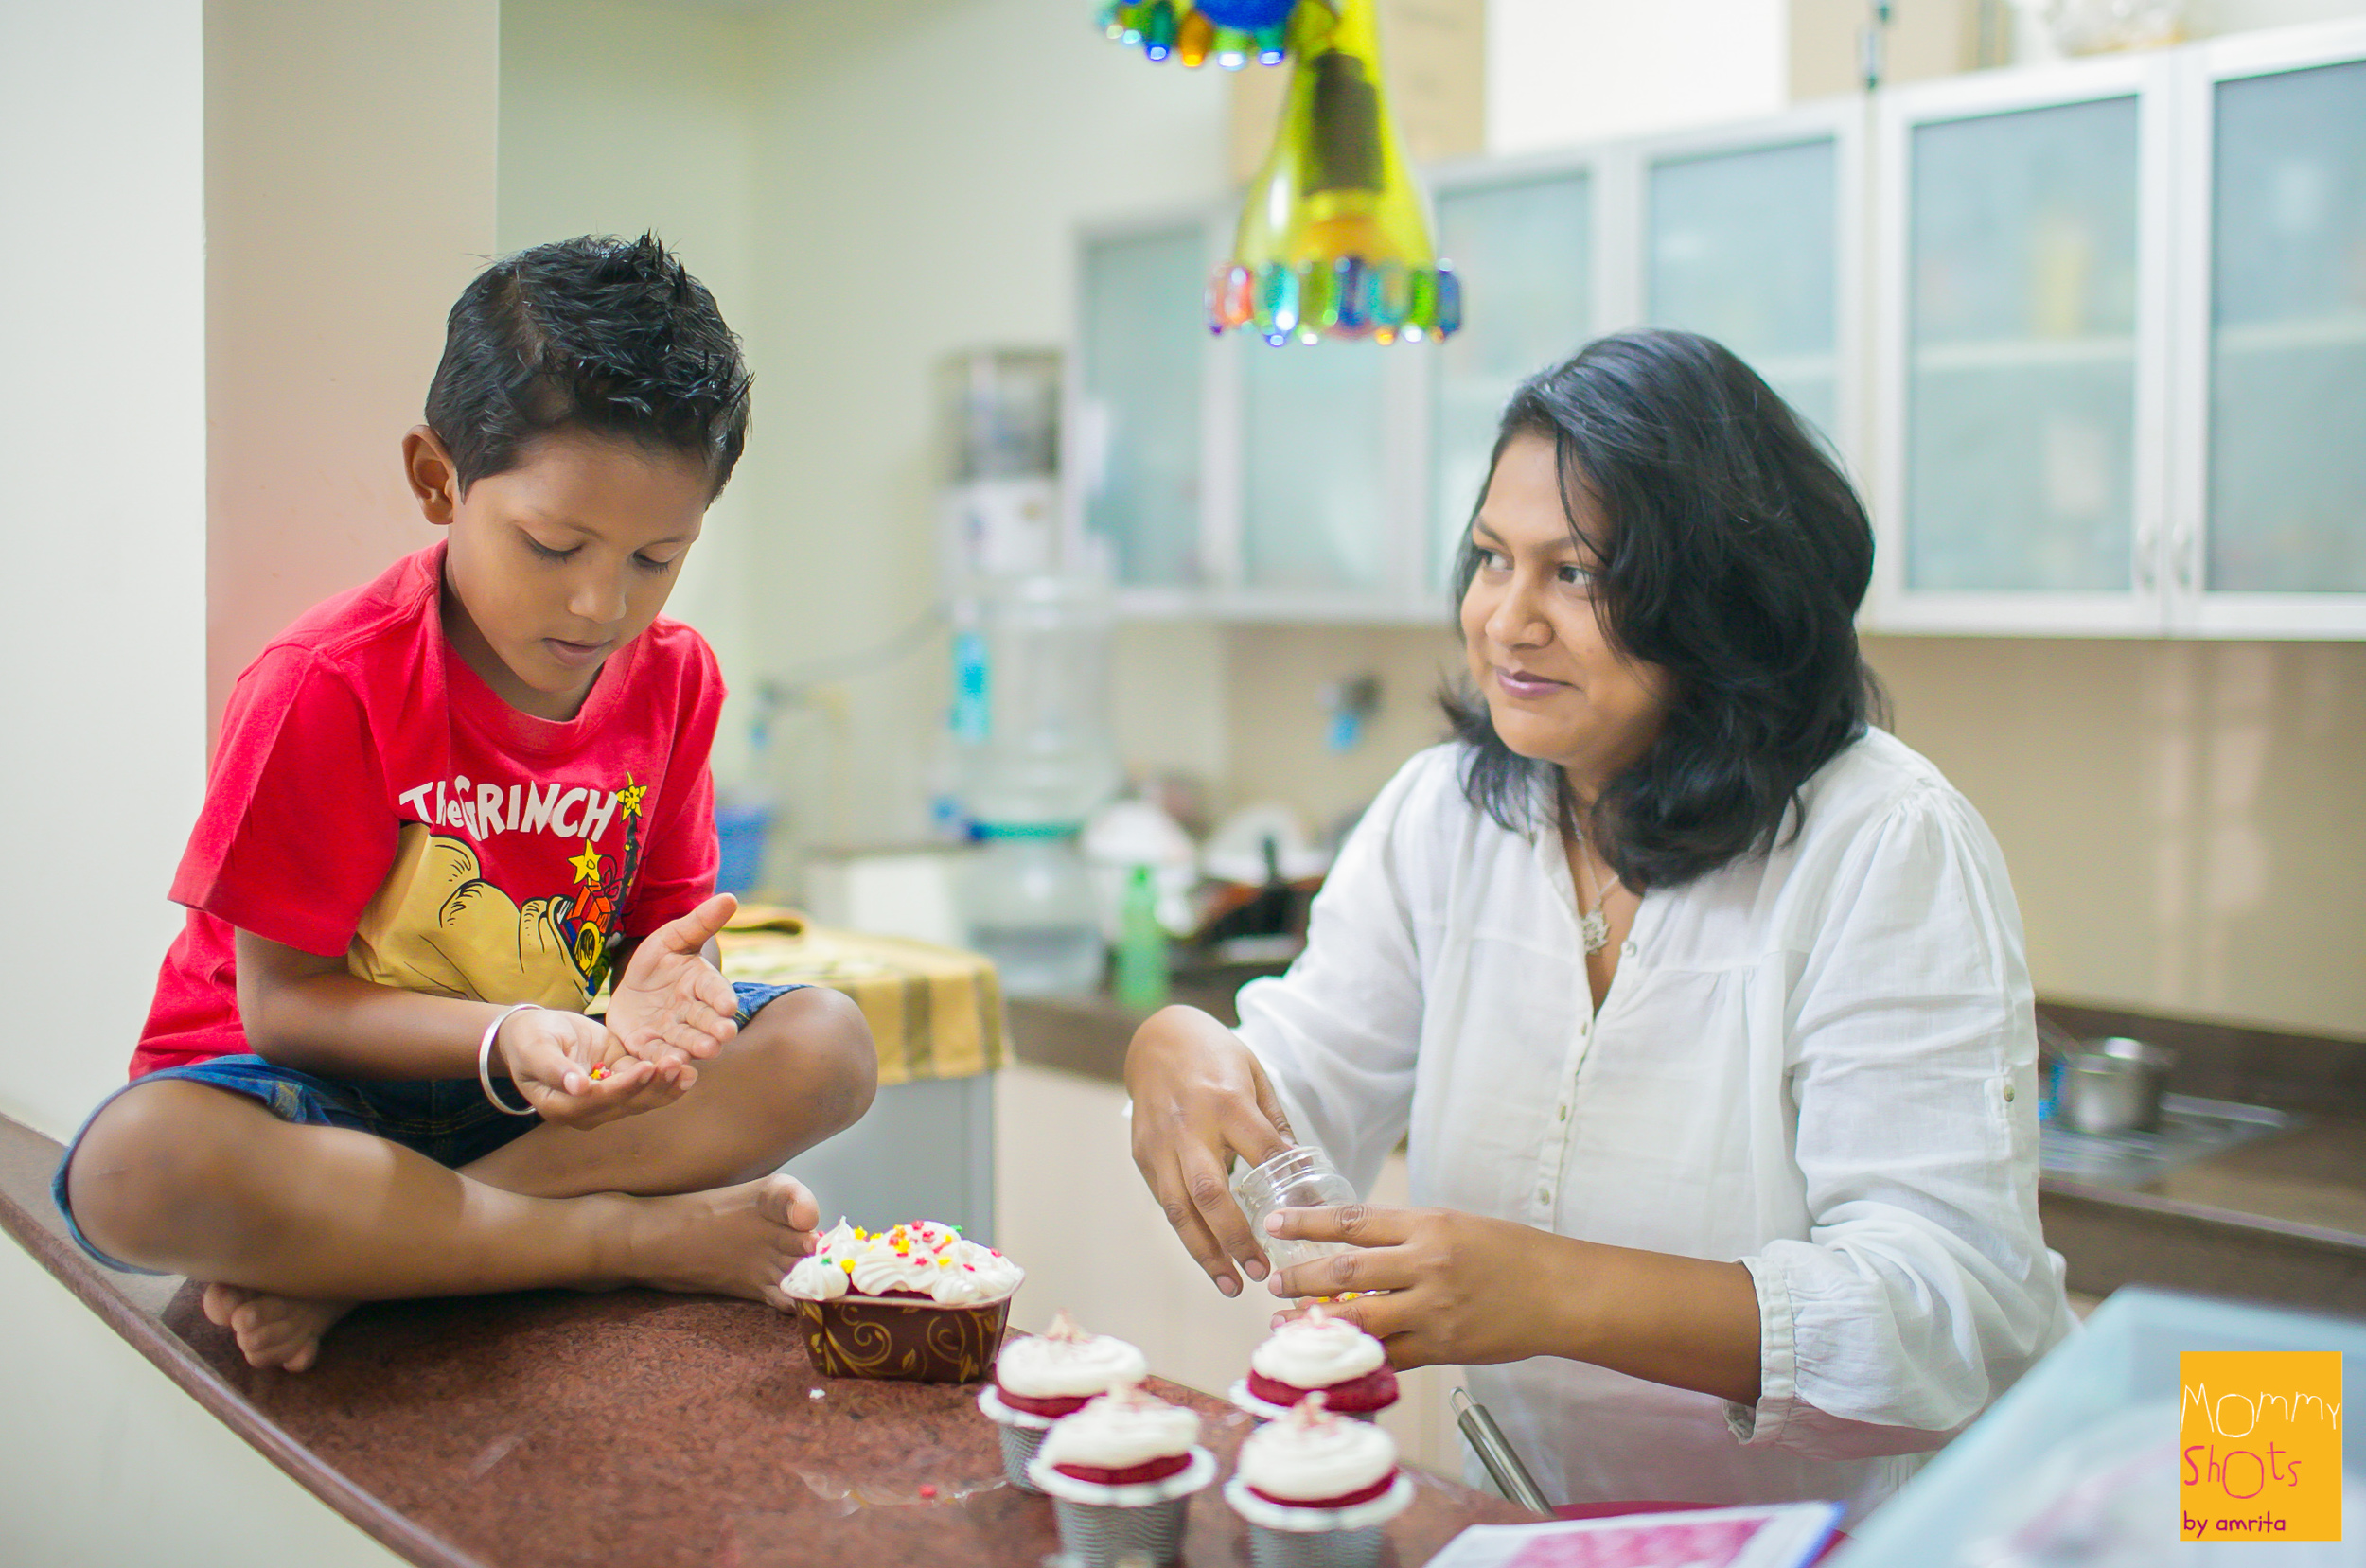 What started as an inspirationto bake her son's birthday cake after a heave dose of food episodes during her pregnancy, is now a fully grown home-baking business 'The little Devil's Cake Shop',thanks tothe loads of confidence boosting from her partner Subhasish and Rimo her 4-year old son!When Sharmistha isnot working on cake orders, you can find her baking with and for her little Devil Rimo!